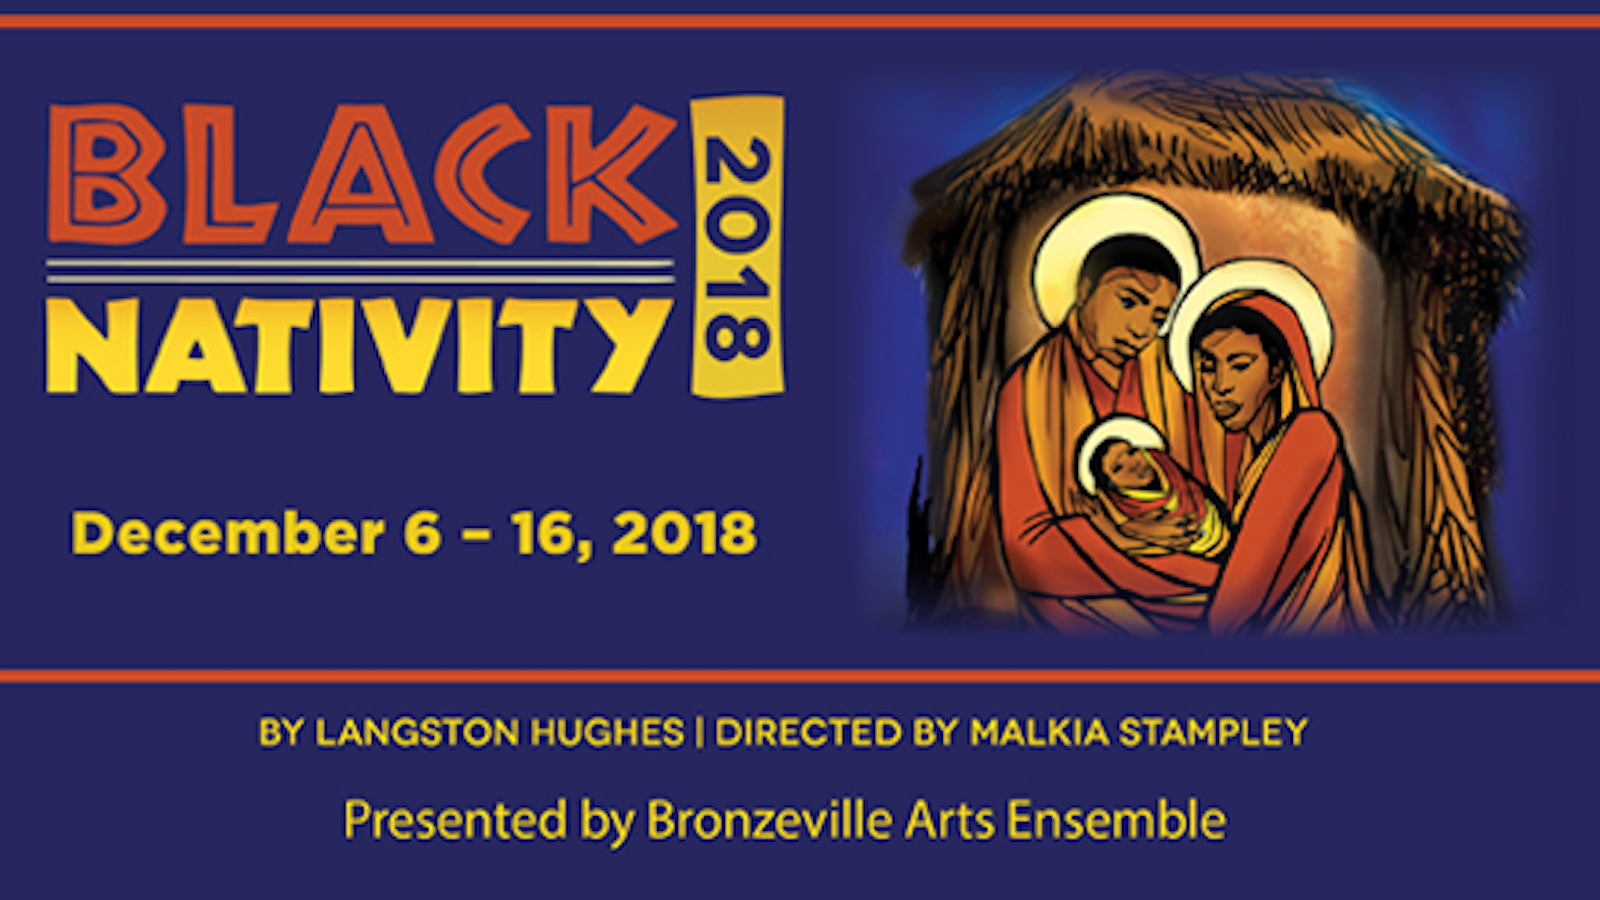 black-nativity-2018-show-detail